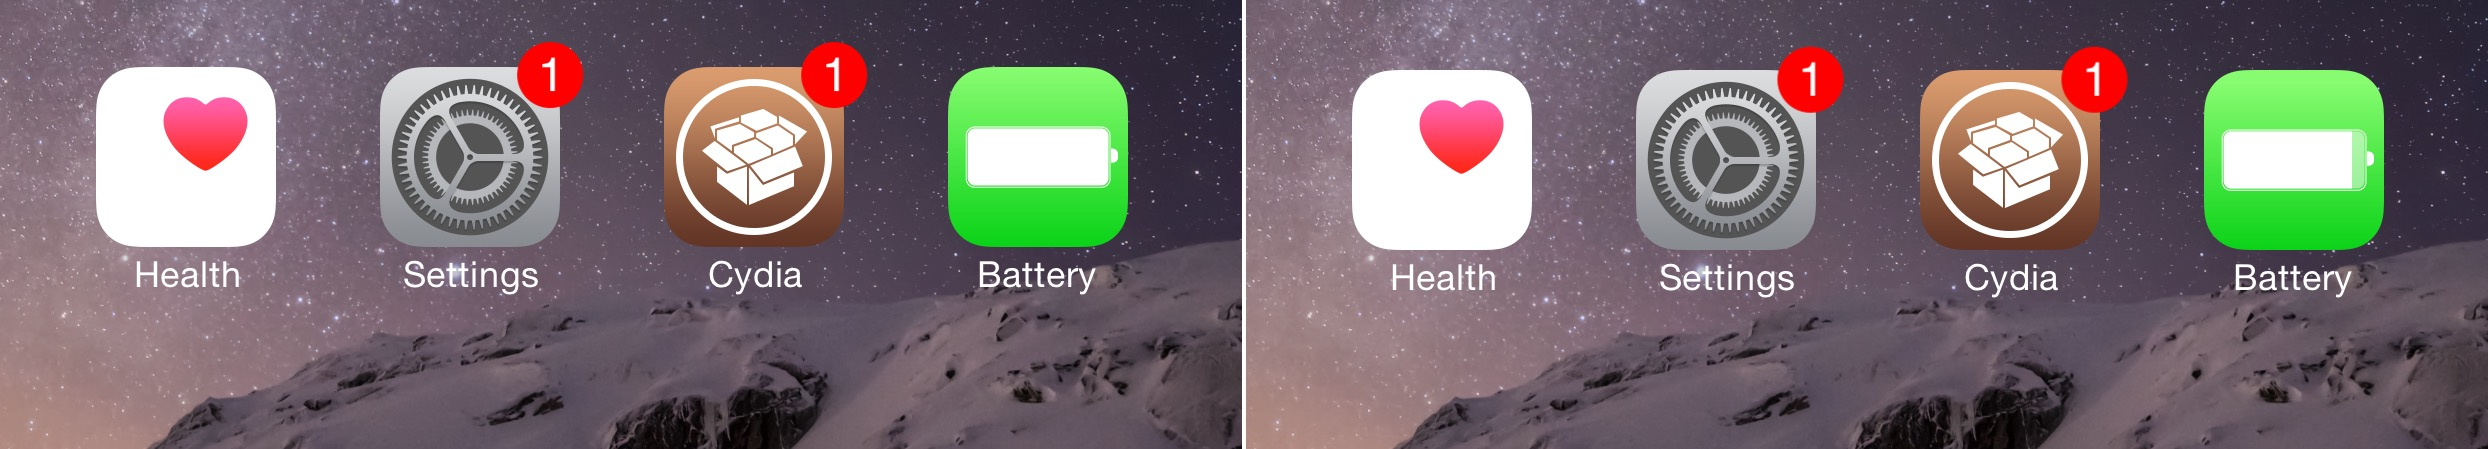 Before and After BatteryIcon